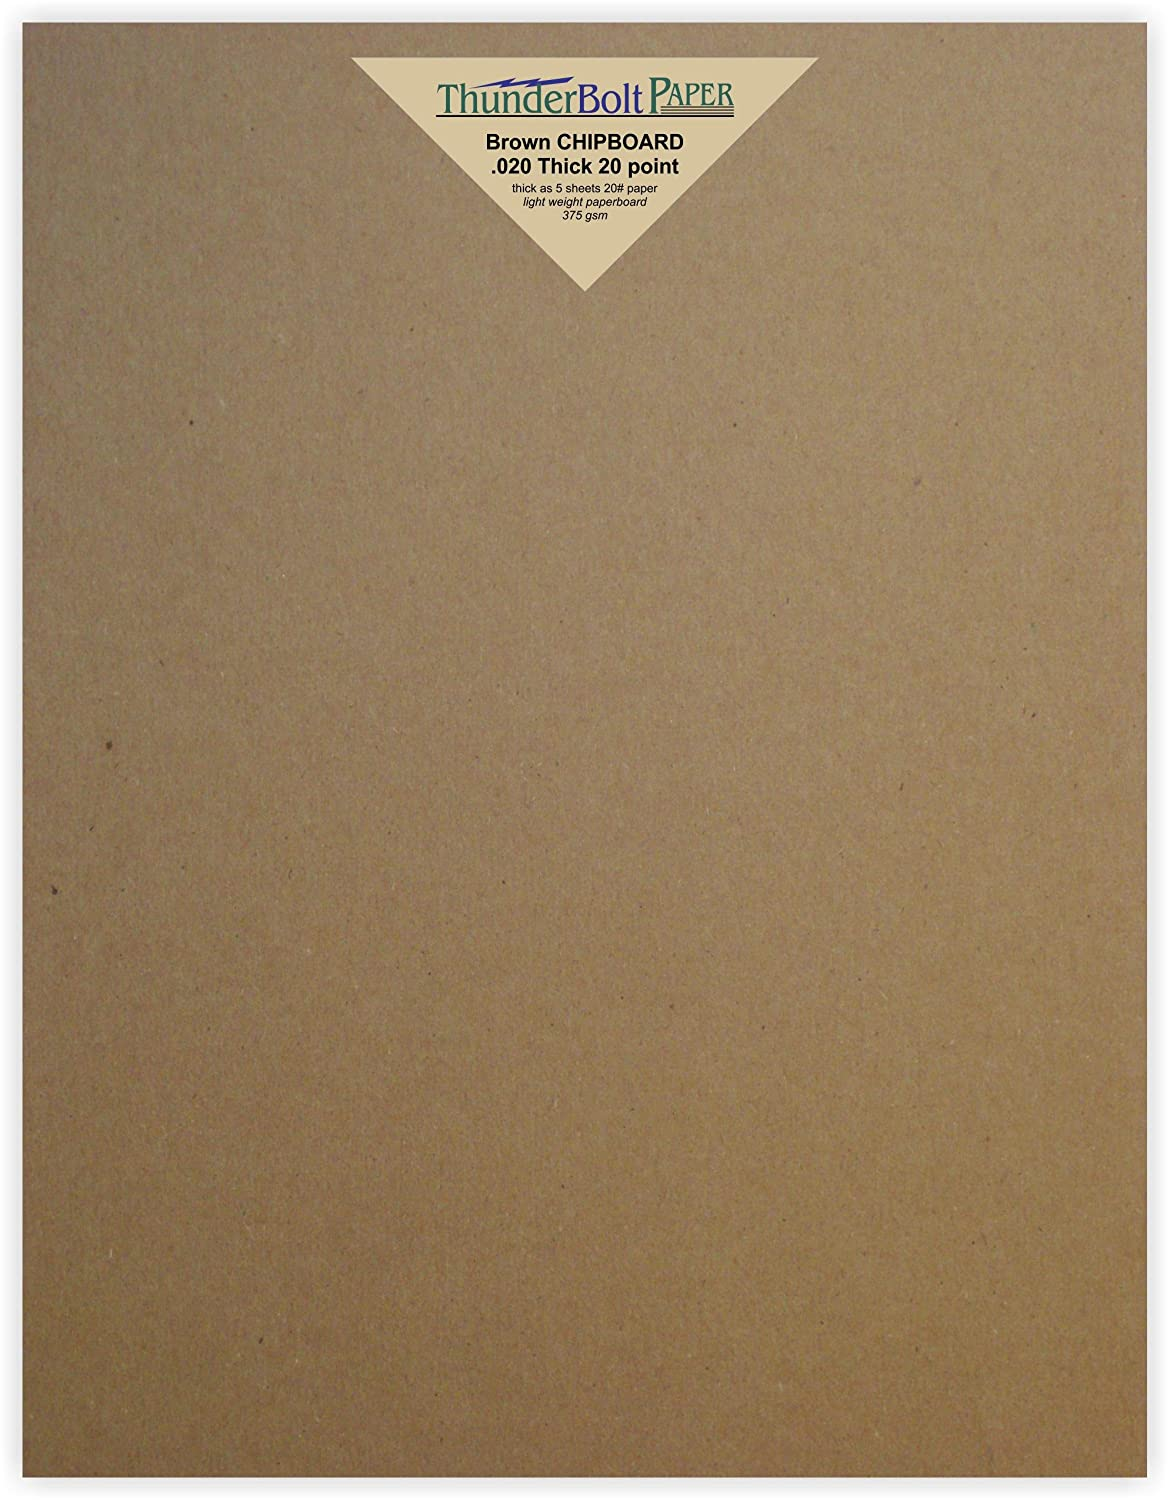 150 Sheets Chipboard 20pt (point) 8 X 10 Inches Light Weight Frame|Photo Size .020 Caliper Thick Cardboard Craft|Ship Brown Kraft Paper Board TBP